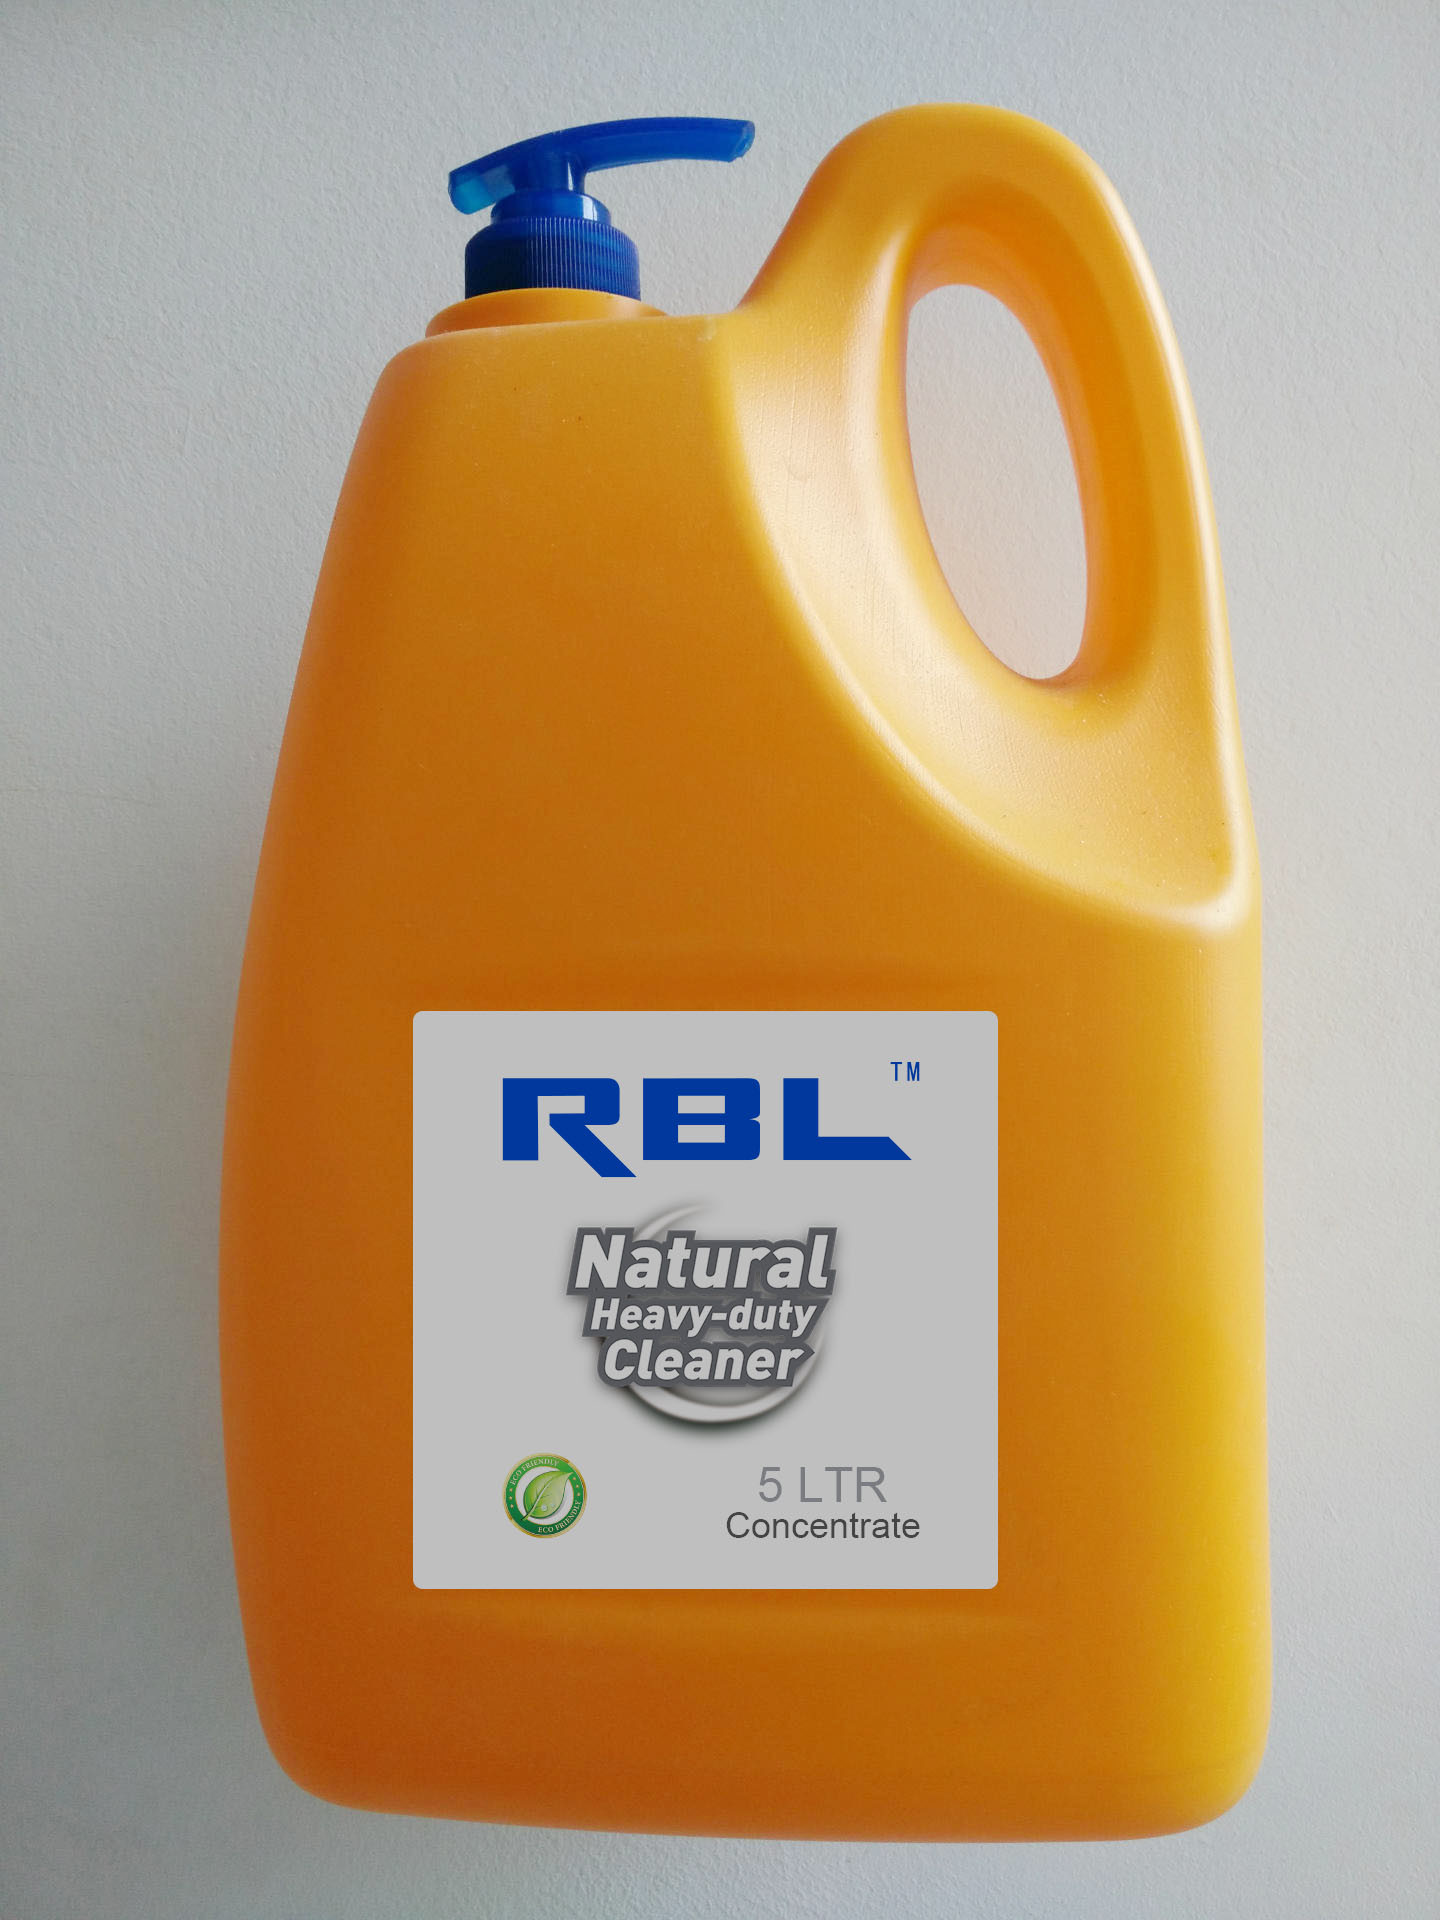 Rbl Natural Heavy-Duty Cleaner 5L Concentrated Liquid Detergent Bio-Degreaser